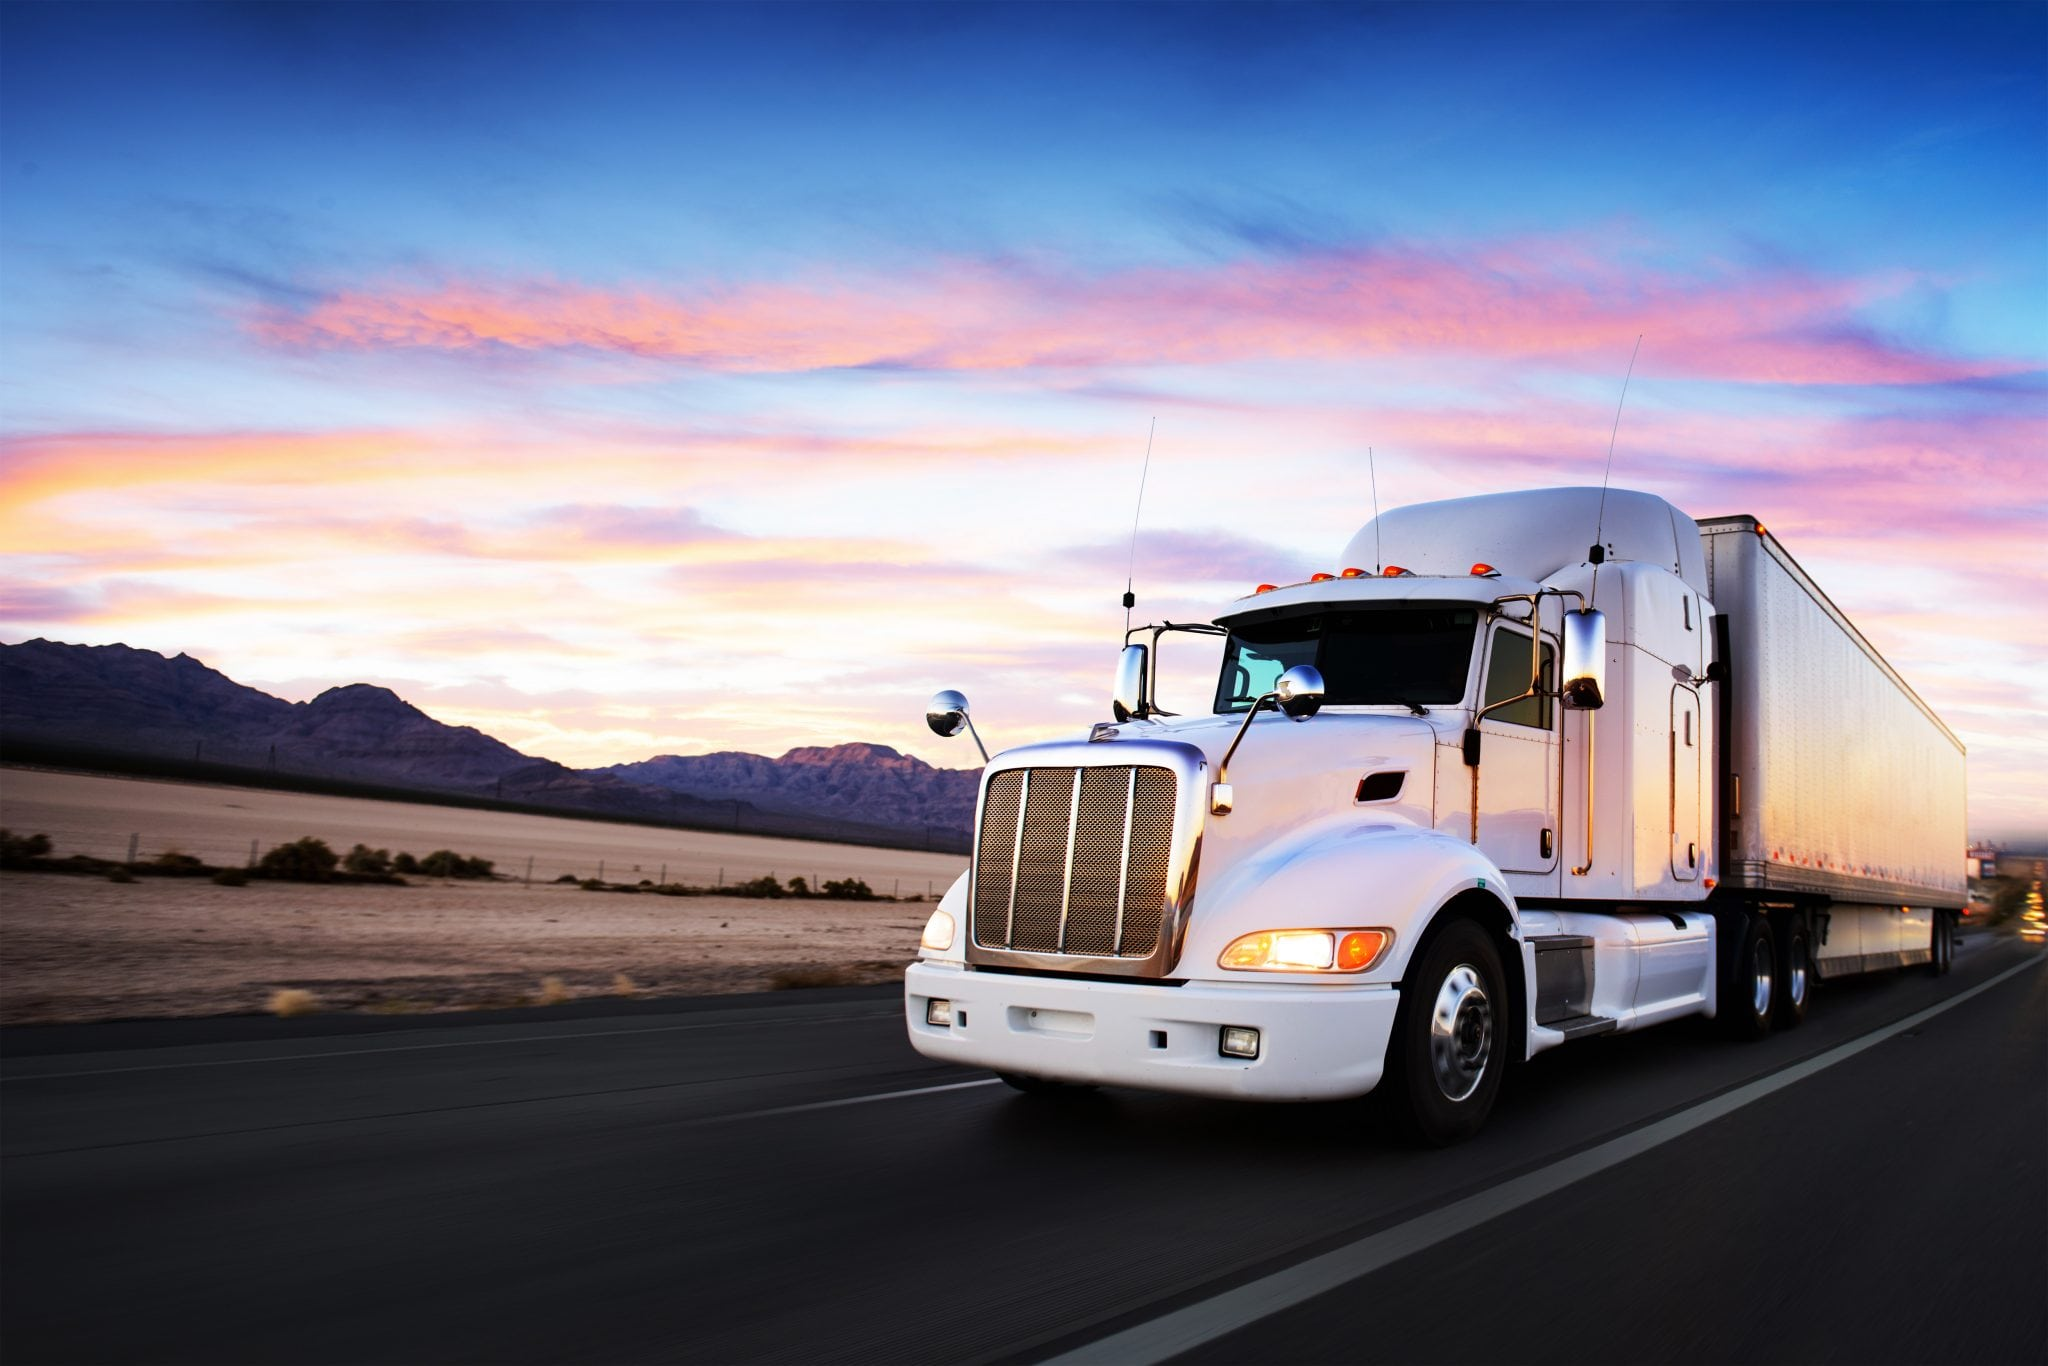 commercial Truck and highway at sunset - transportation background